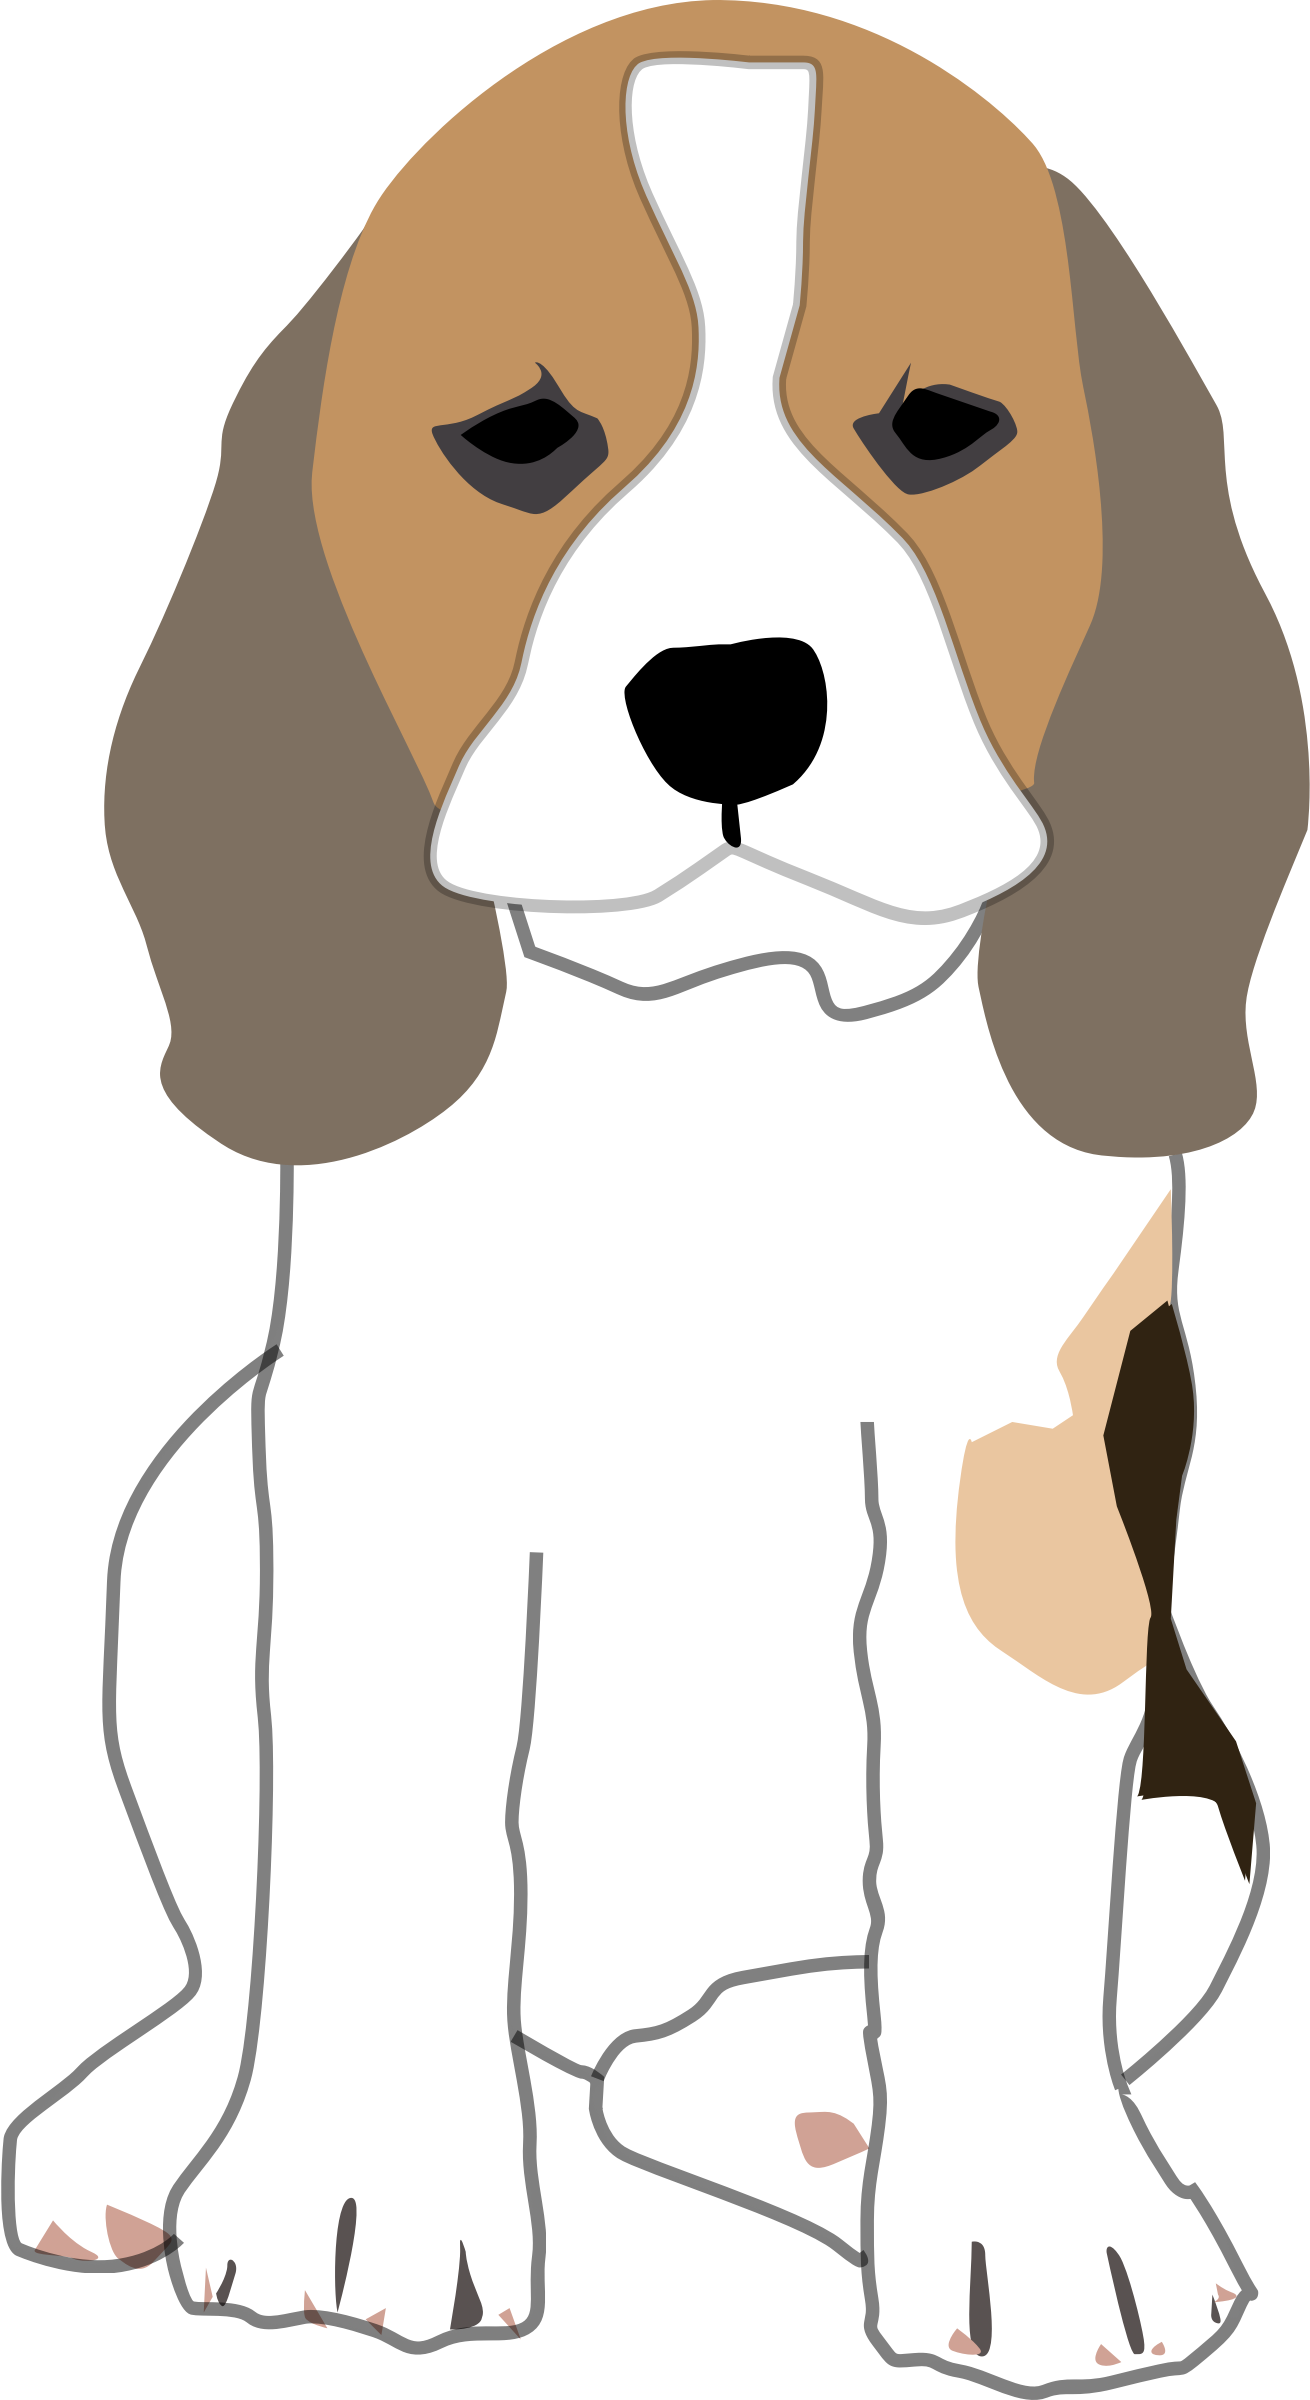 Clipart spoiled beagle image freeuse download Collection of Beagle clipart | Free download best Beagle clipart on ... image freeuse download